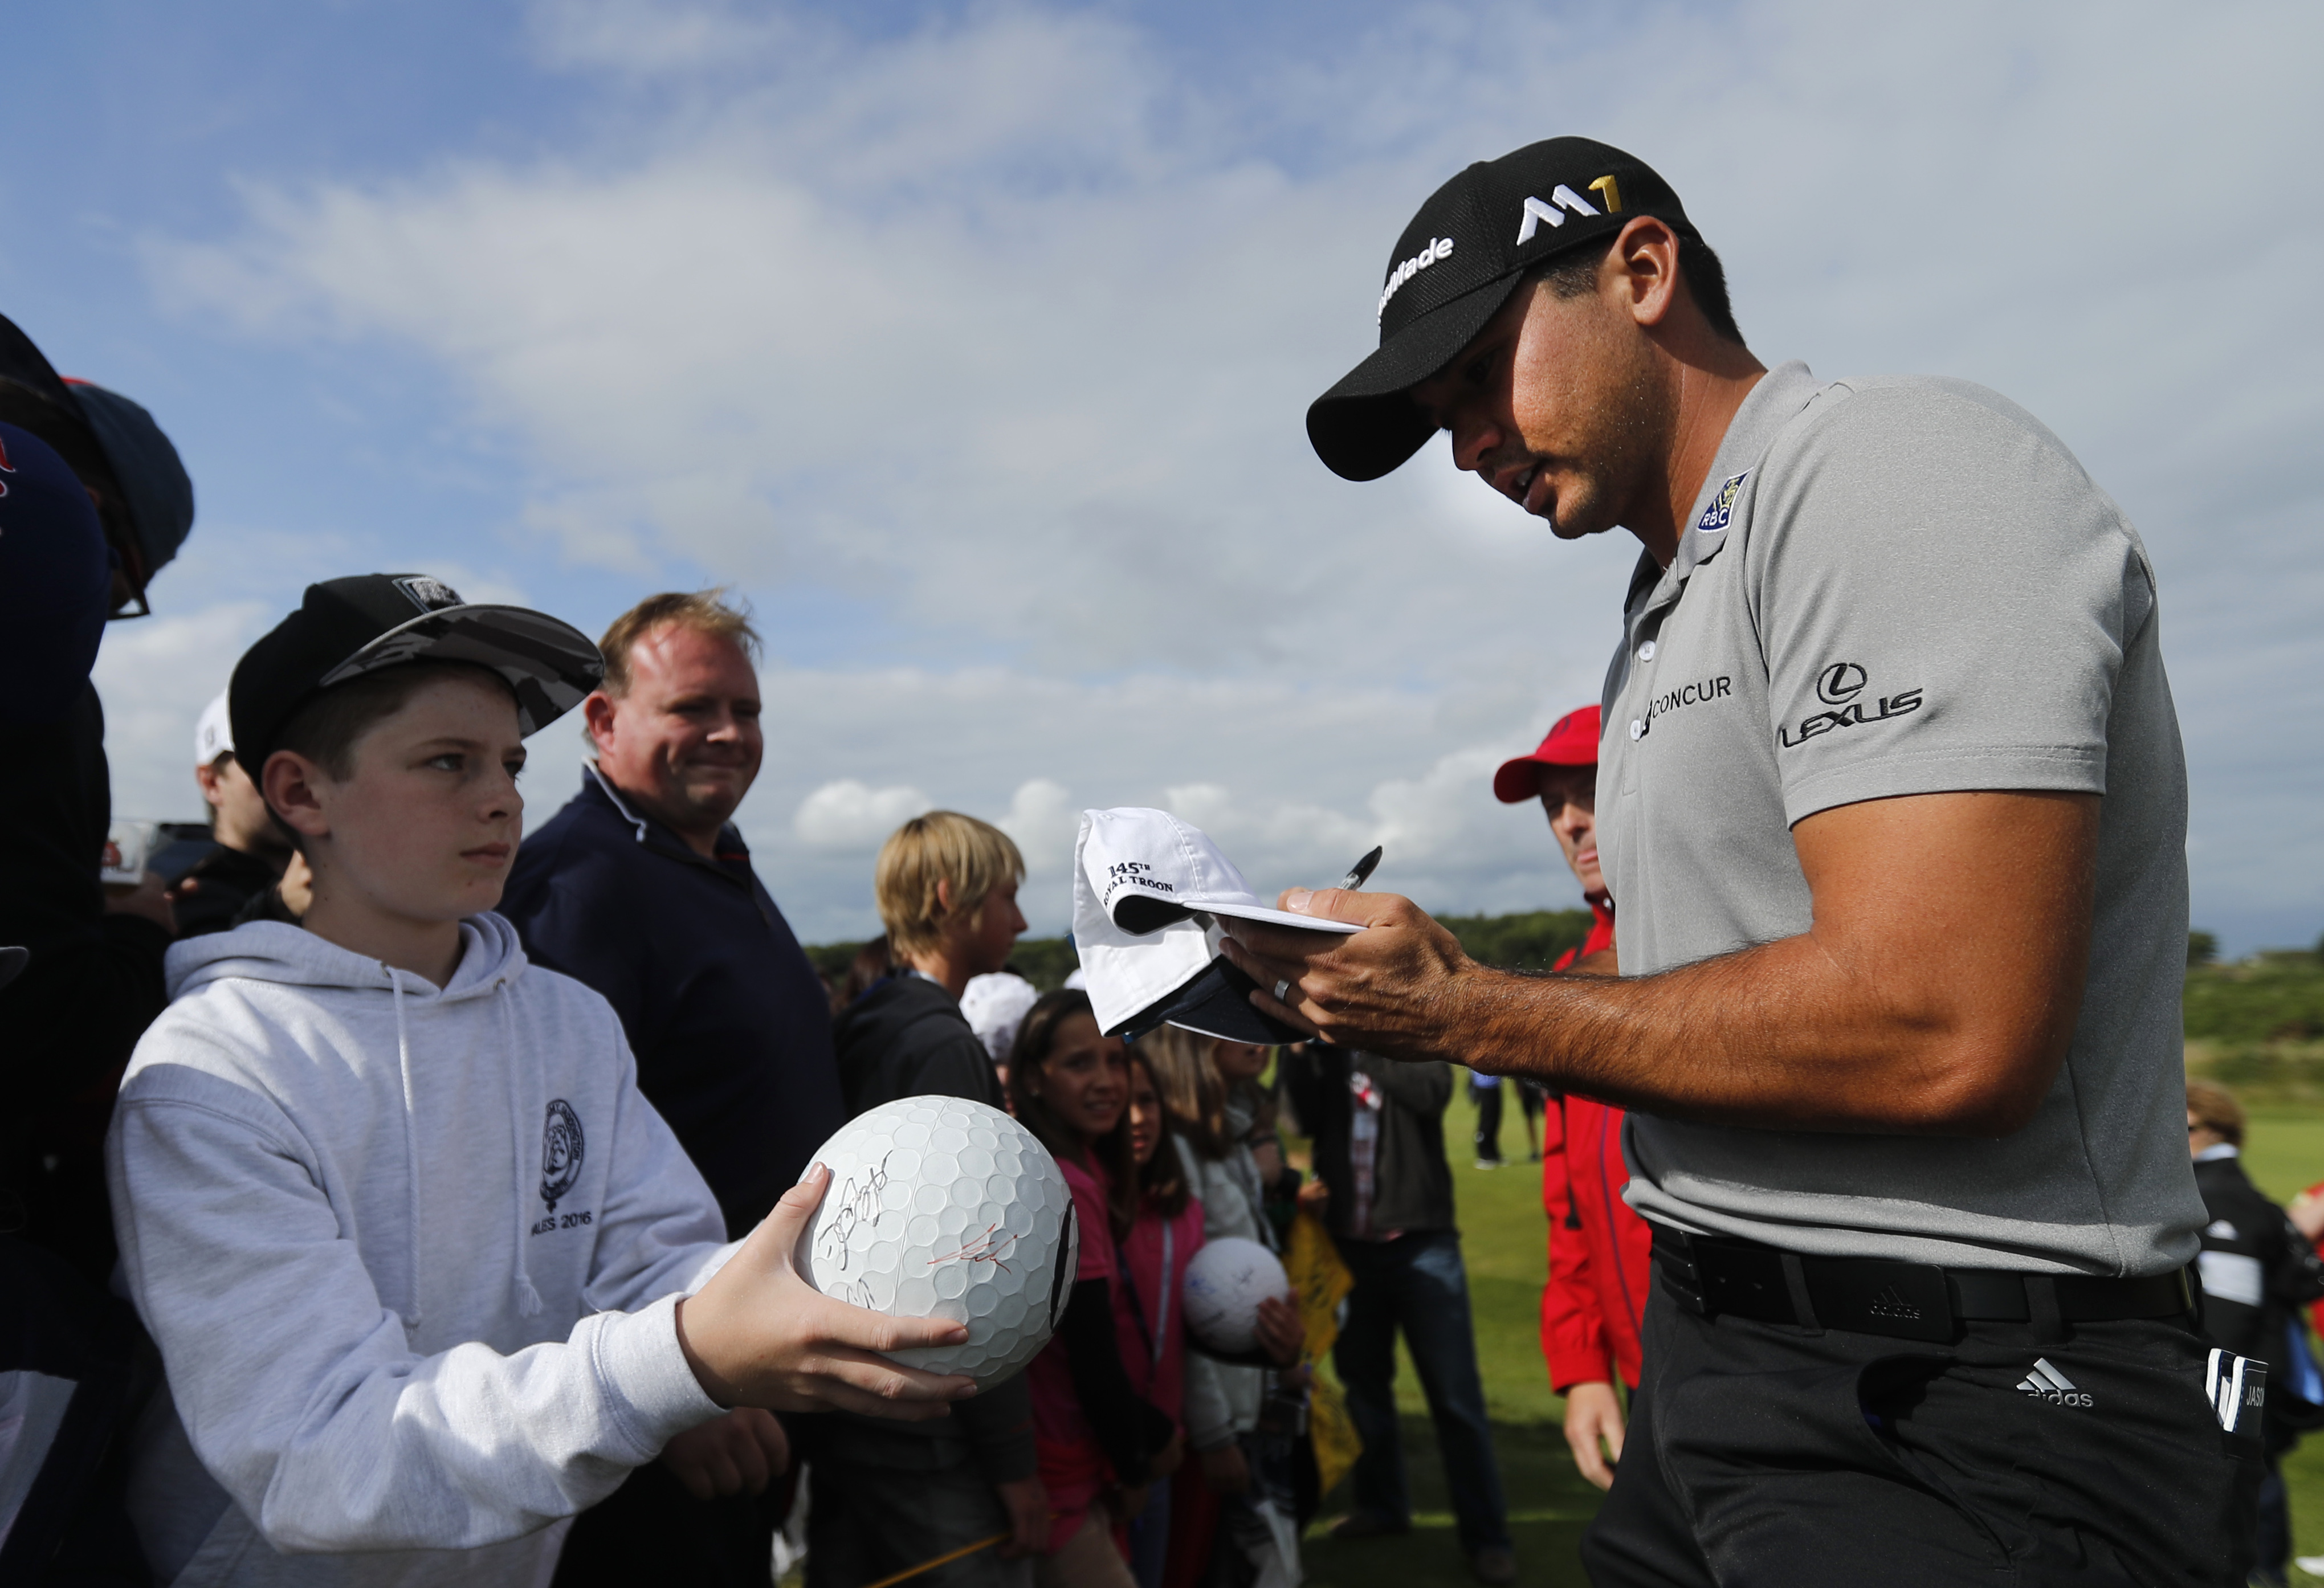 Jason Day of Australia signs autographs as he walks off the 12th green during a practice round ahead of the British Open Golf Championship at the Royal Troon Golf Club in Troon, Scotland, Tuesday, July 12, 2016. The Open starts Thursday. (AP Photo/Ben Cur